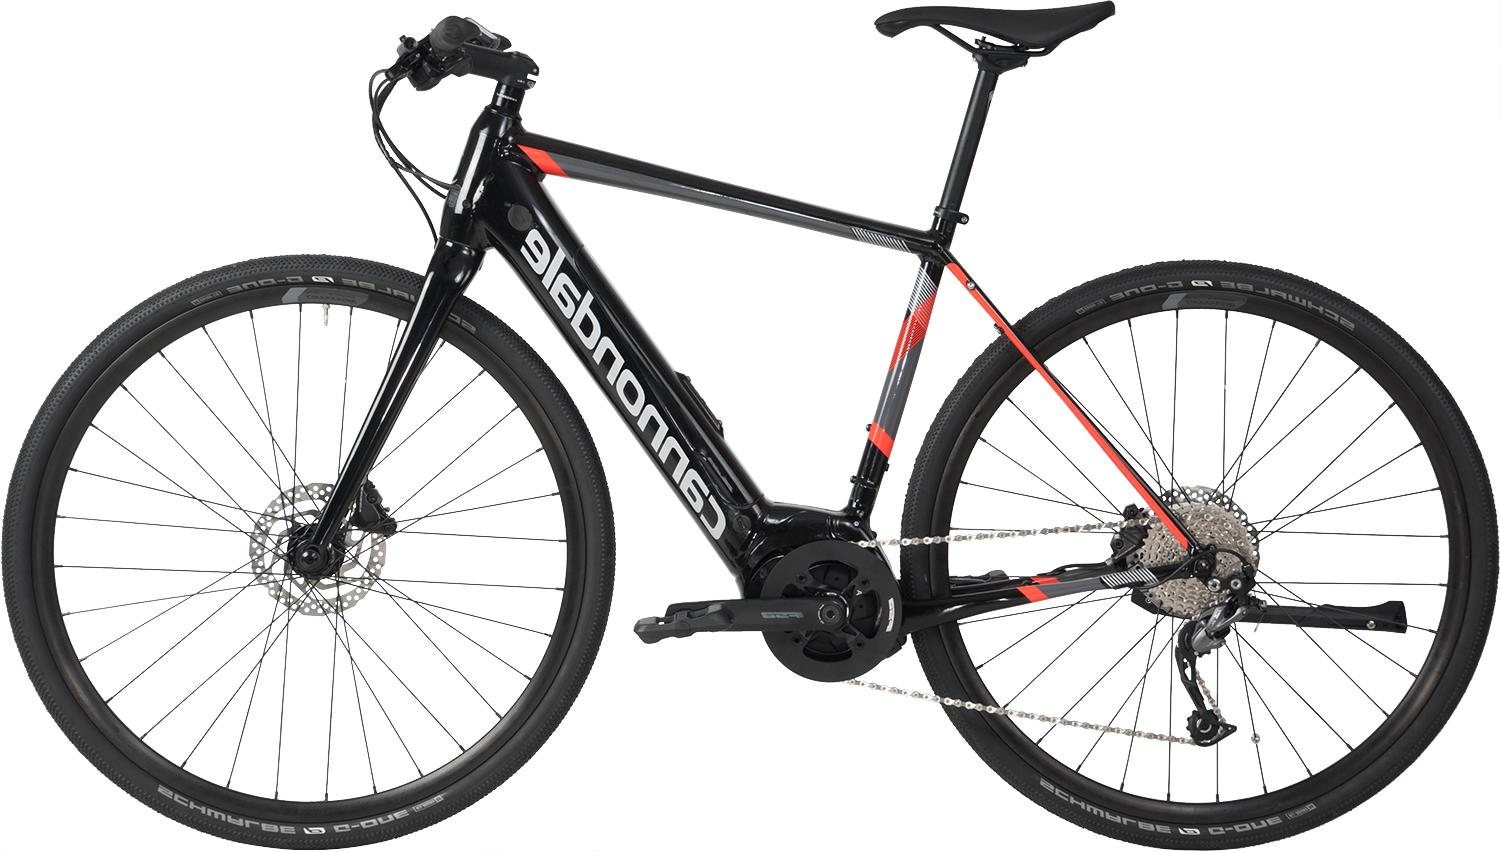 2019 Cannondale Quick Neo Electric Assist Hybrid/Commuter Bike